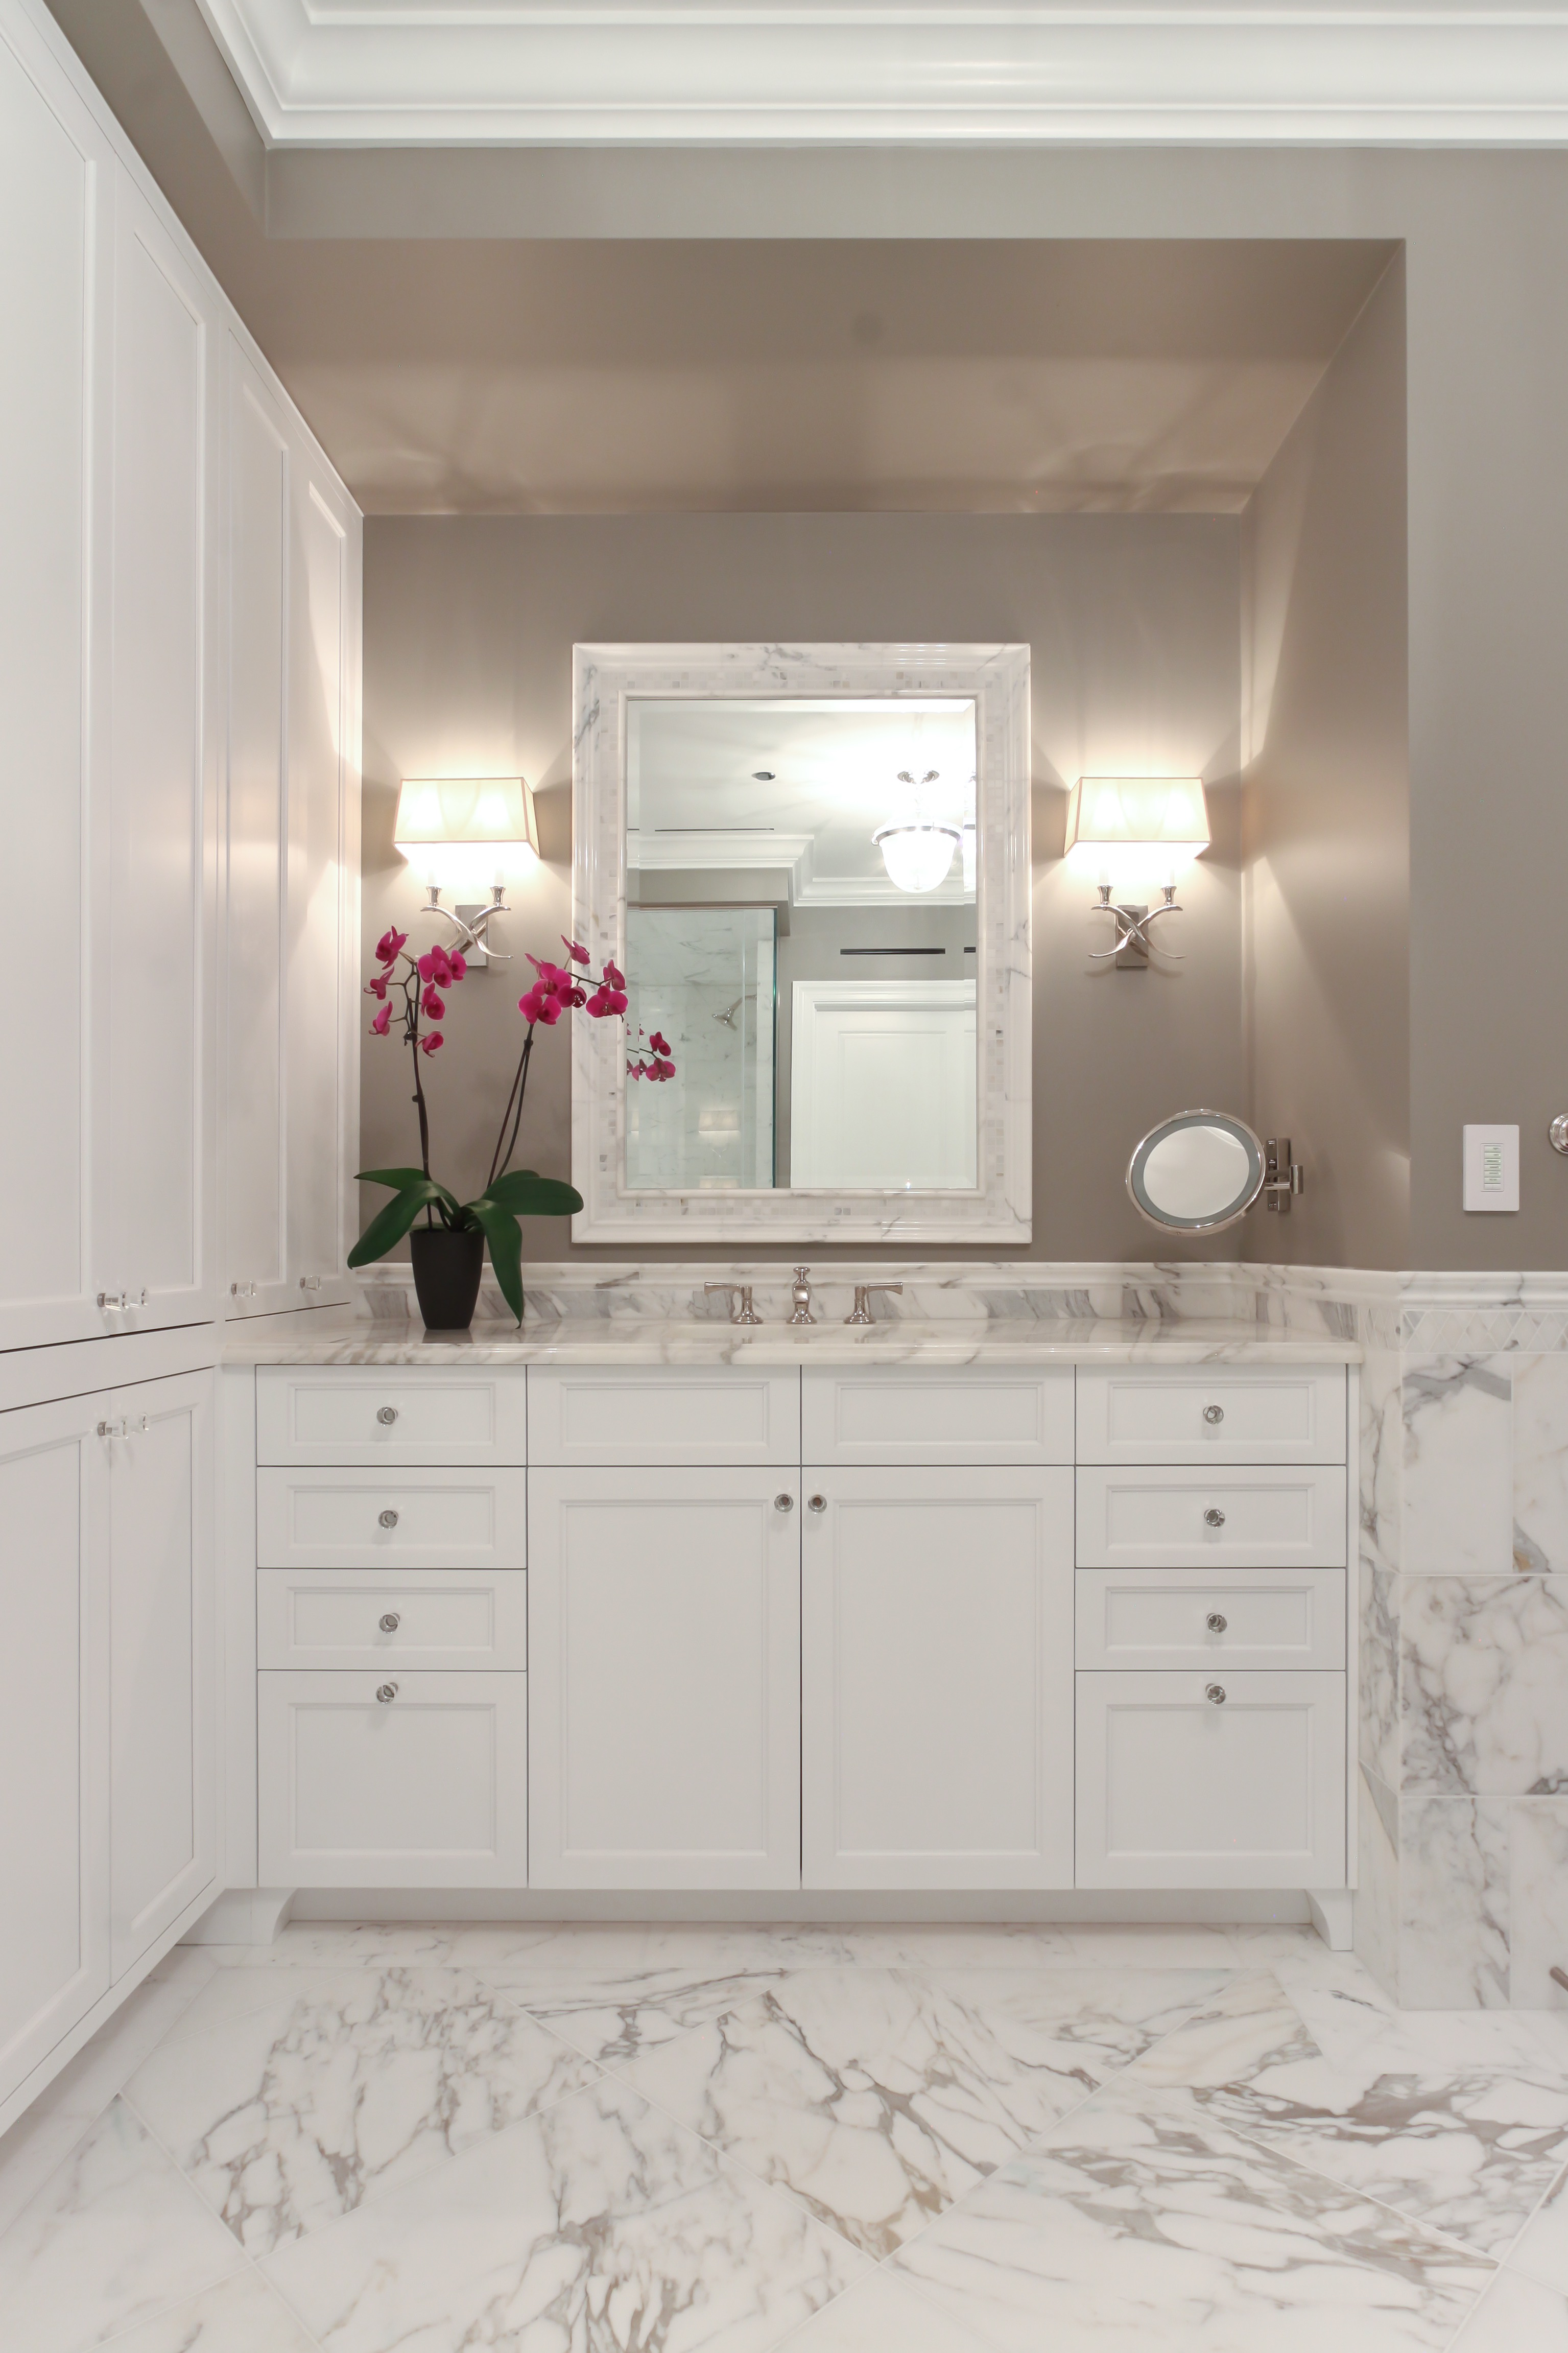 Transitional Gray Bathroom With Classy White Vanity And Storage (Image 18 of 20)